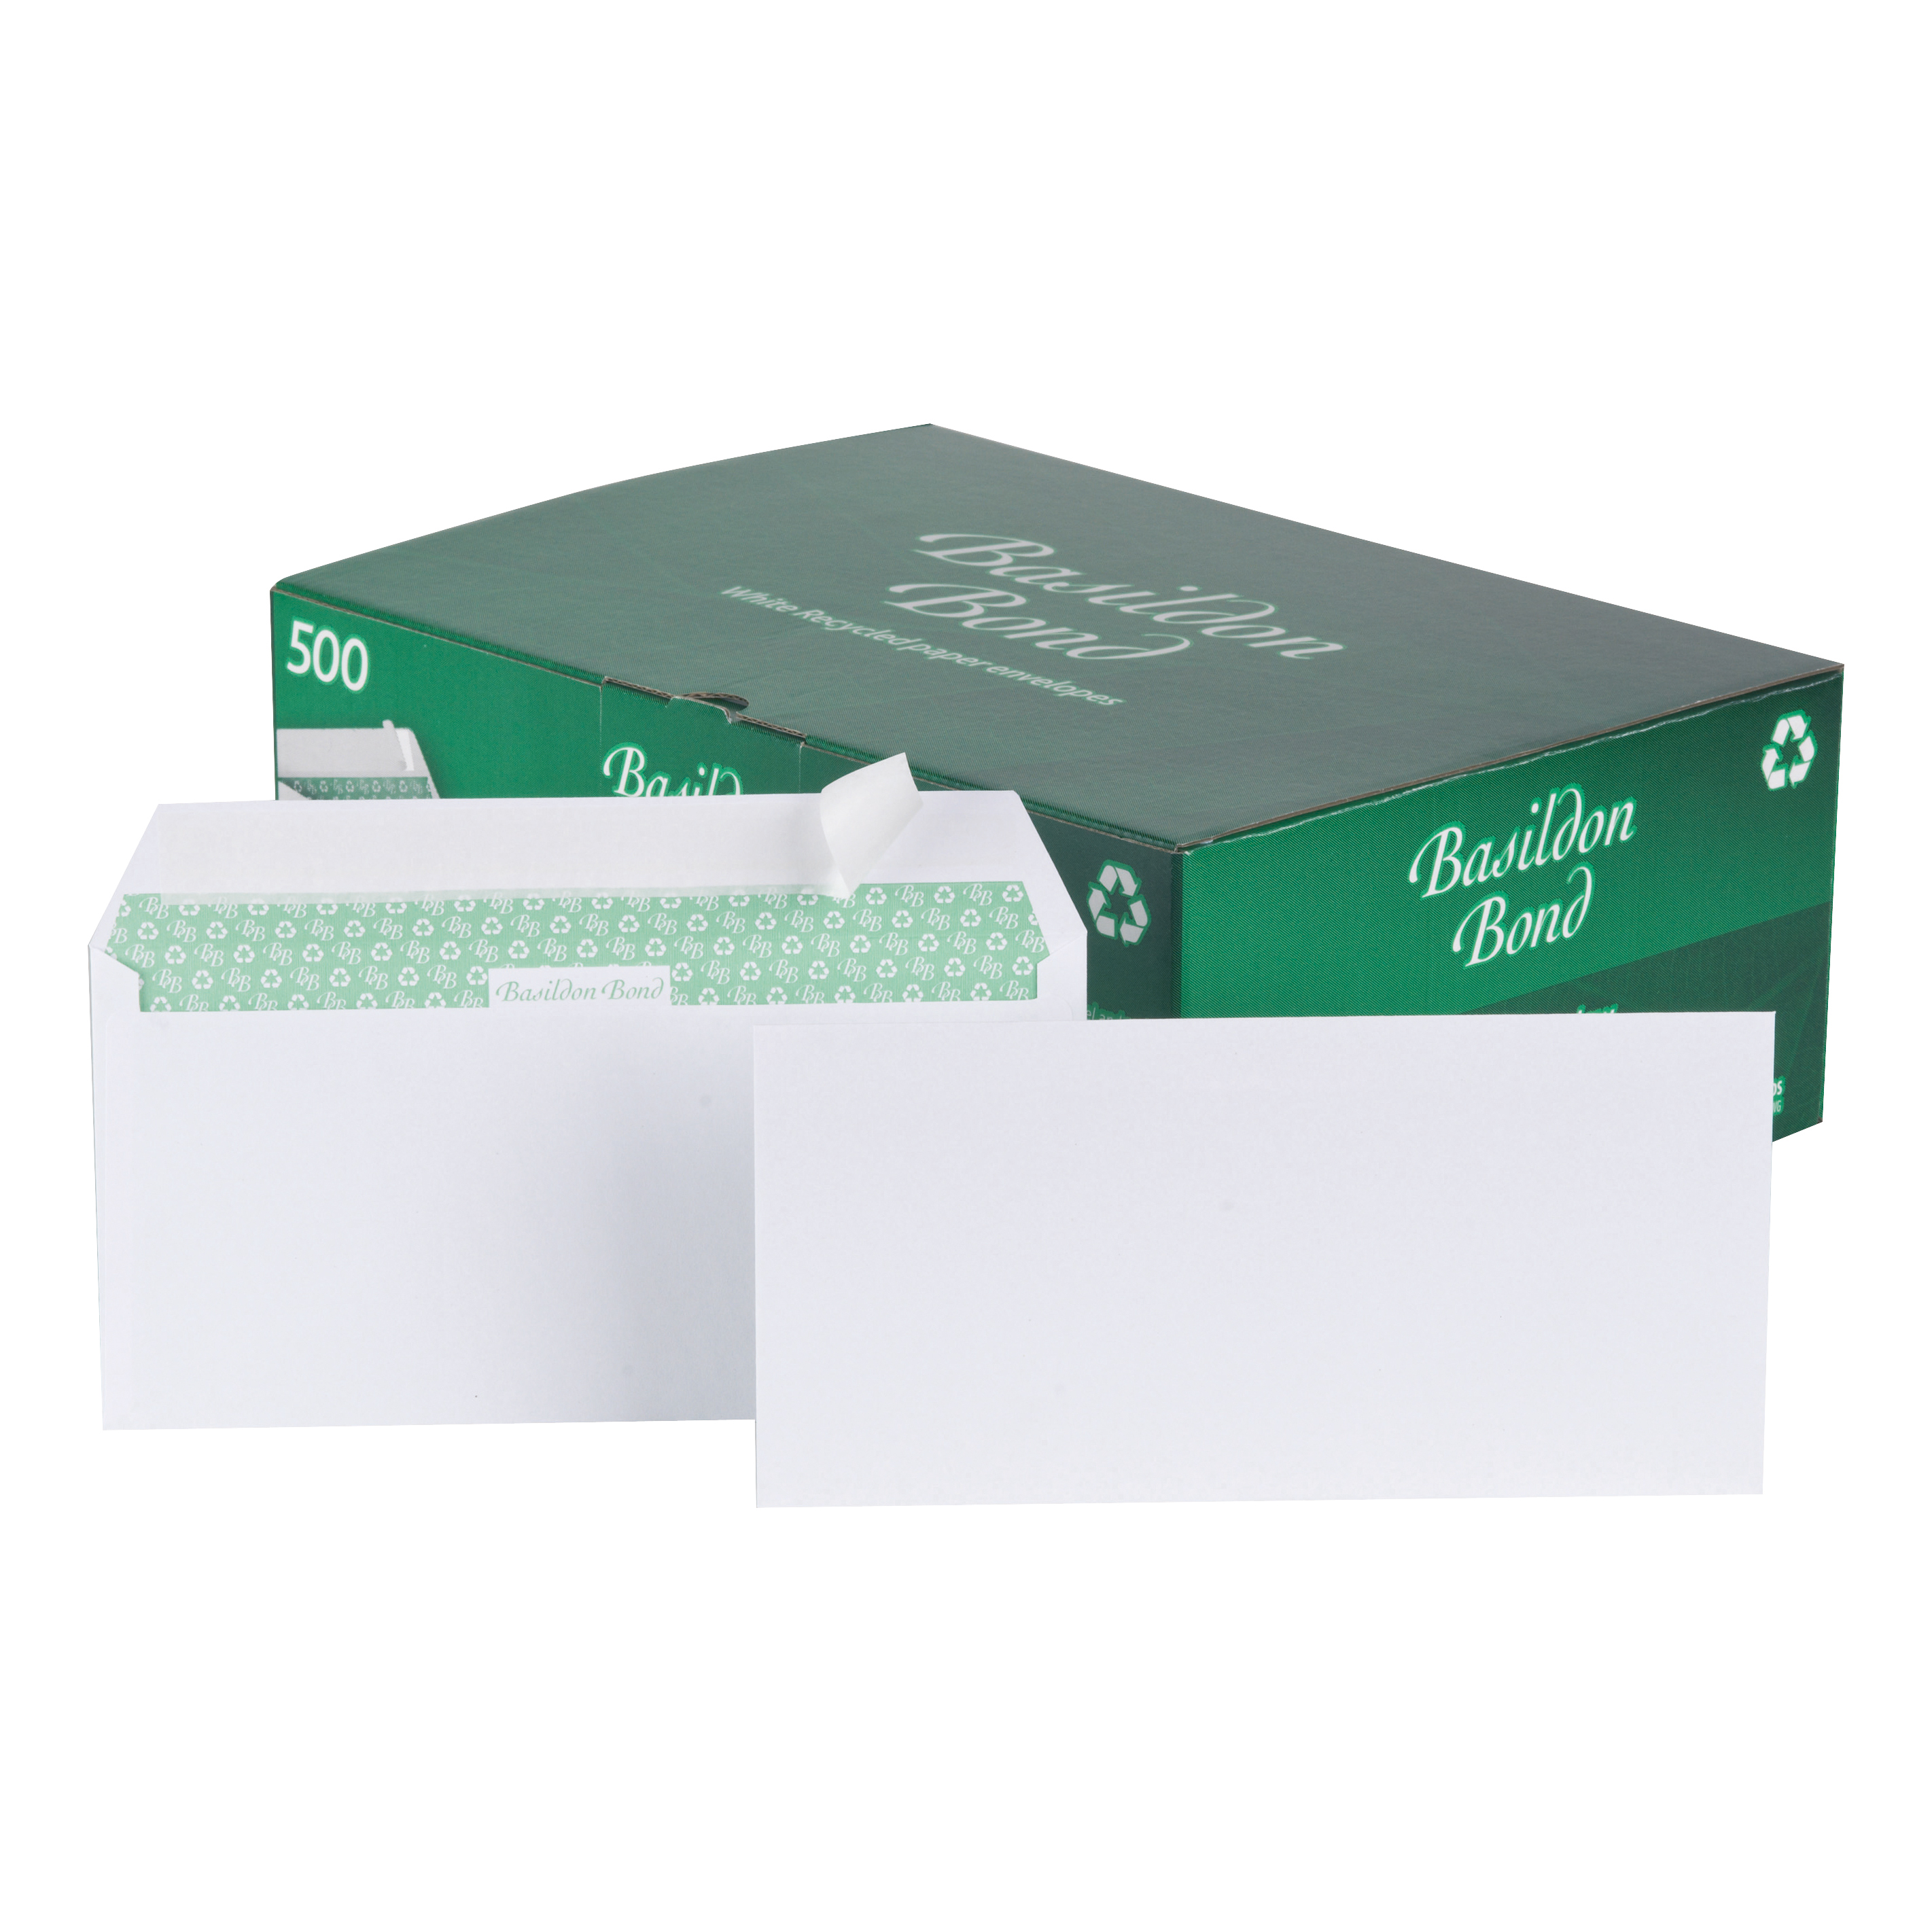 Basildon Bond Envelopes DL Wallet Peel and Seal Recycled 120gsm White Ref C80116 Pack 500 PRIZE DRAW